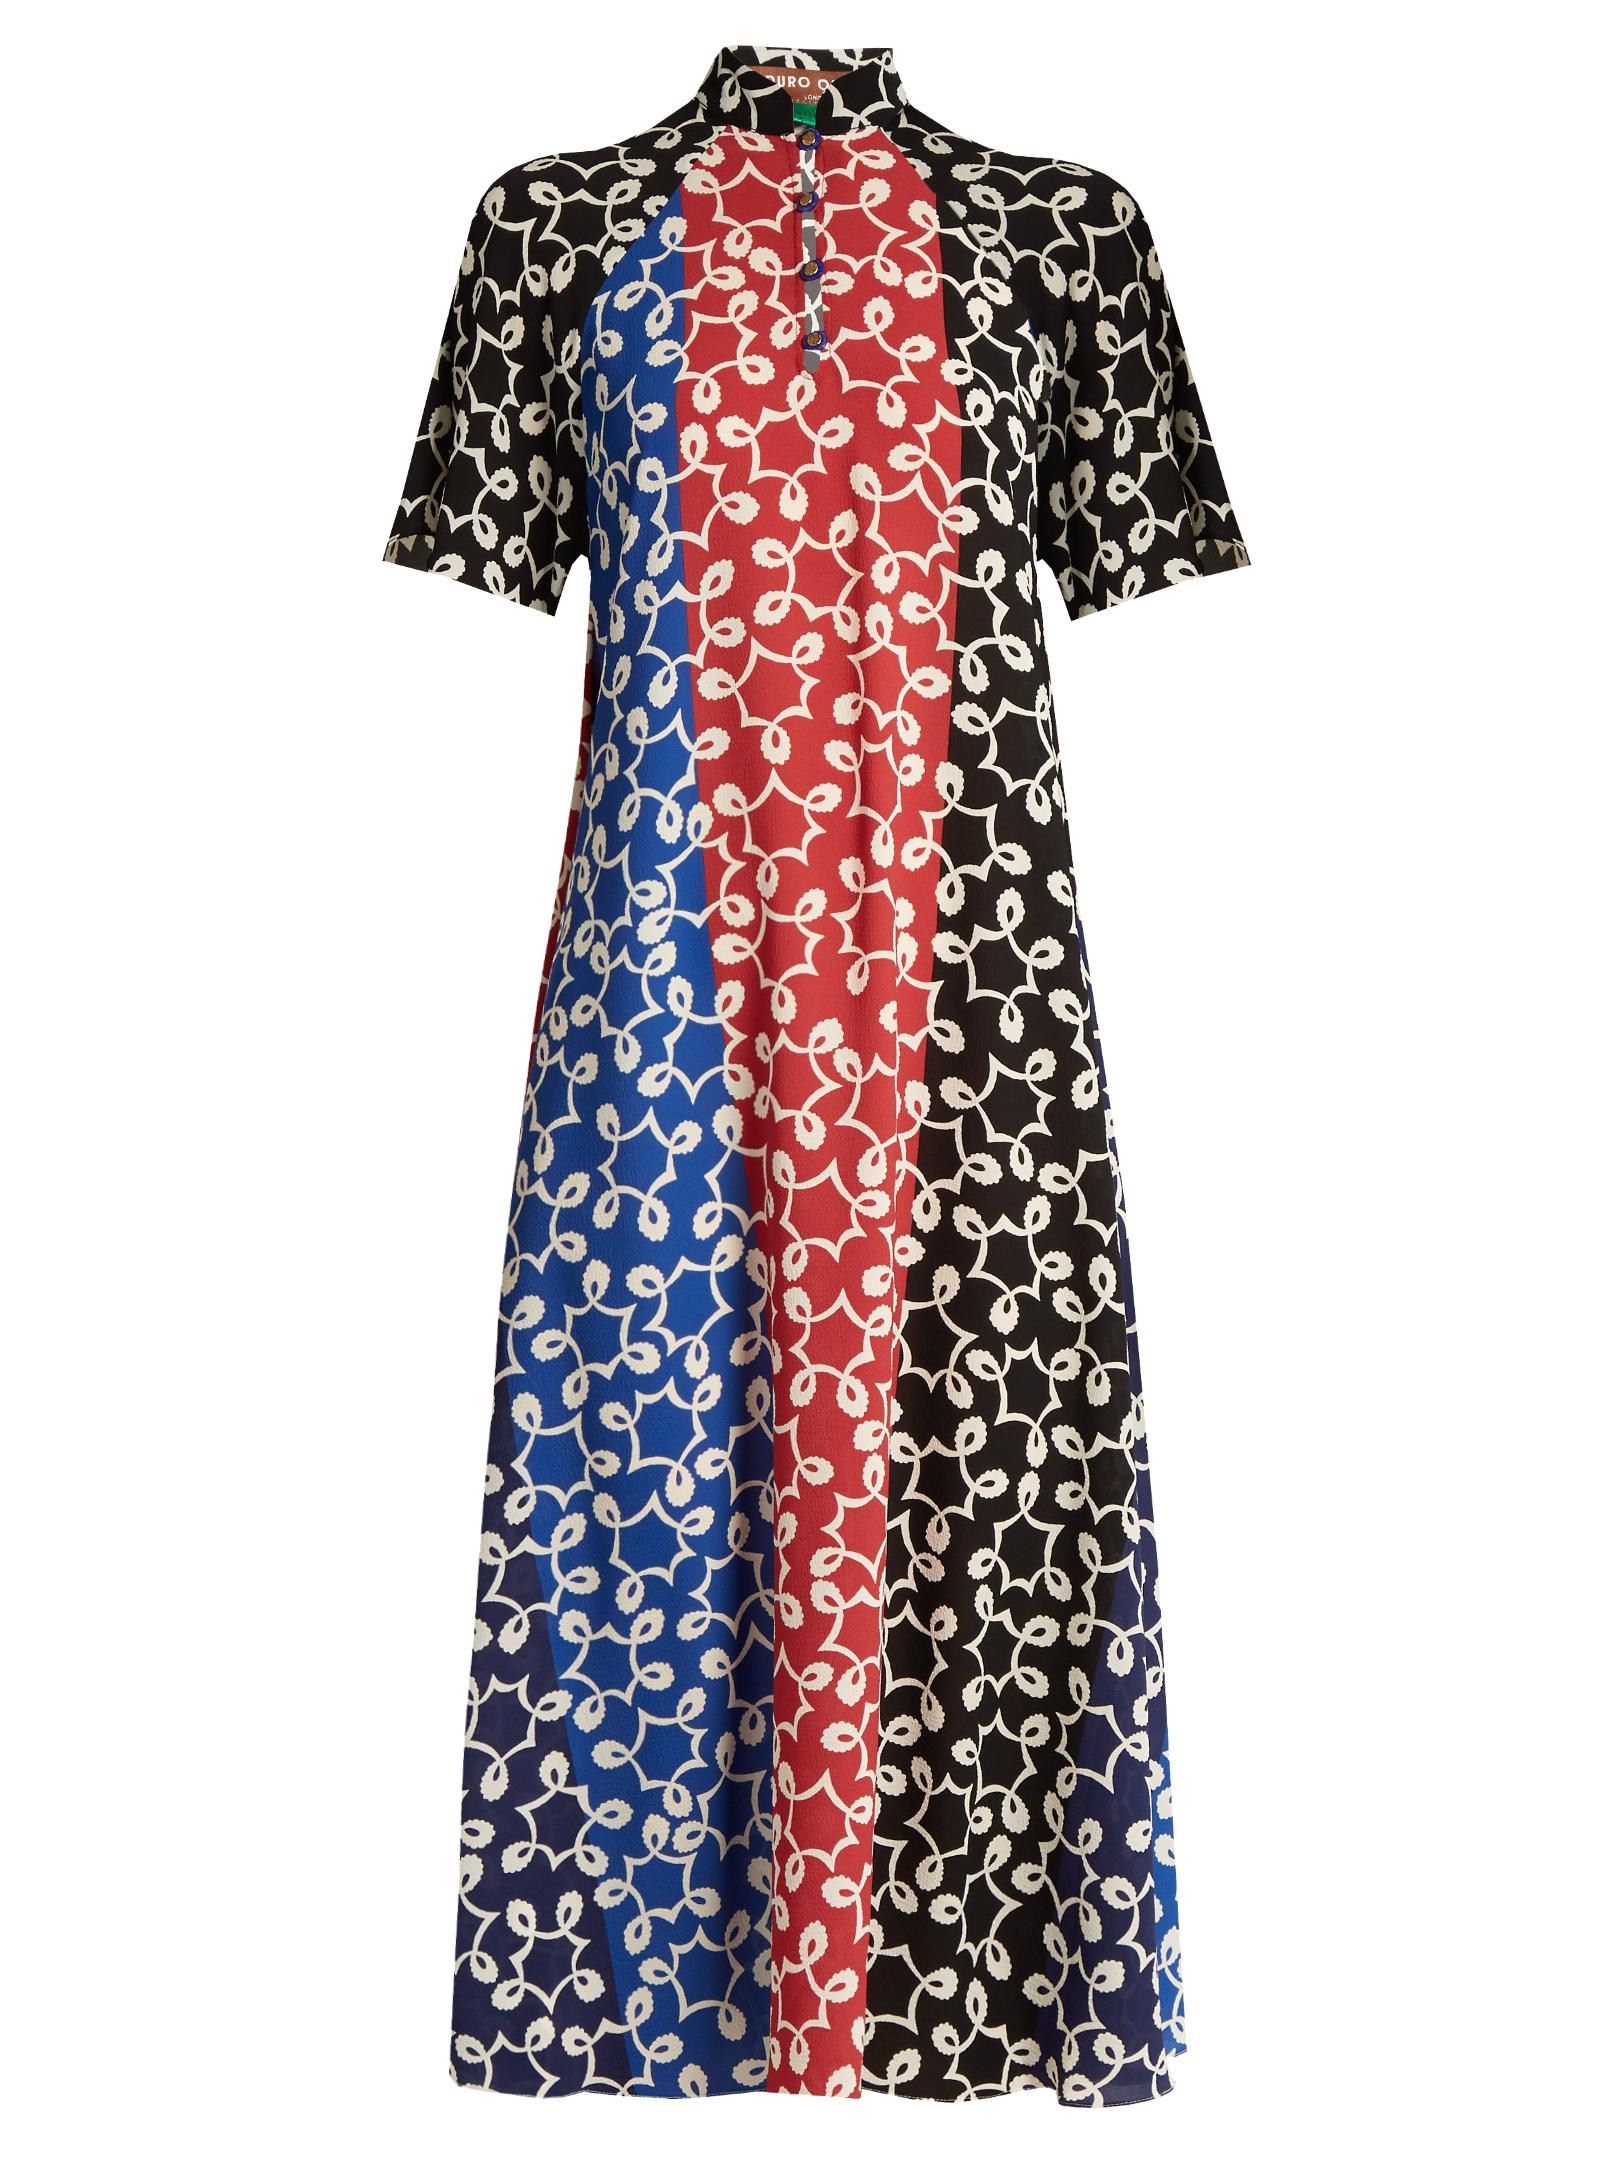 Perfect Cheap Price 2018 Online Nina contrast-panel crepe dress Duro Olowu With Paypal Free Shipping Free Shipping Latest 9cT8HPm